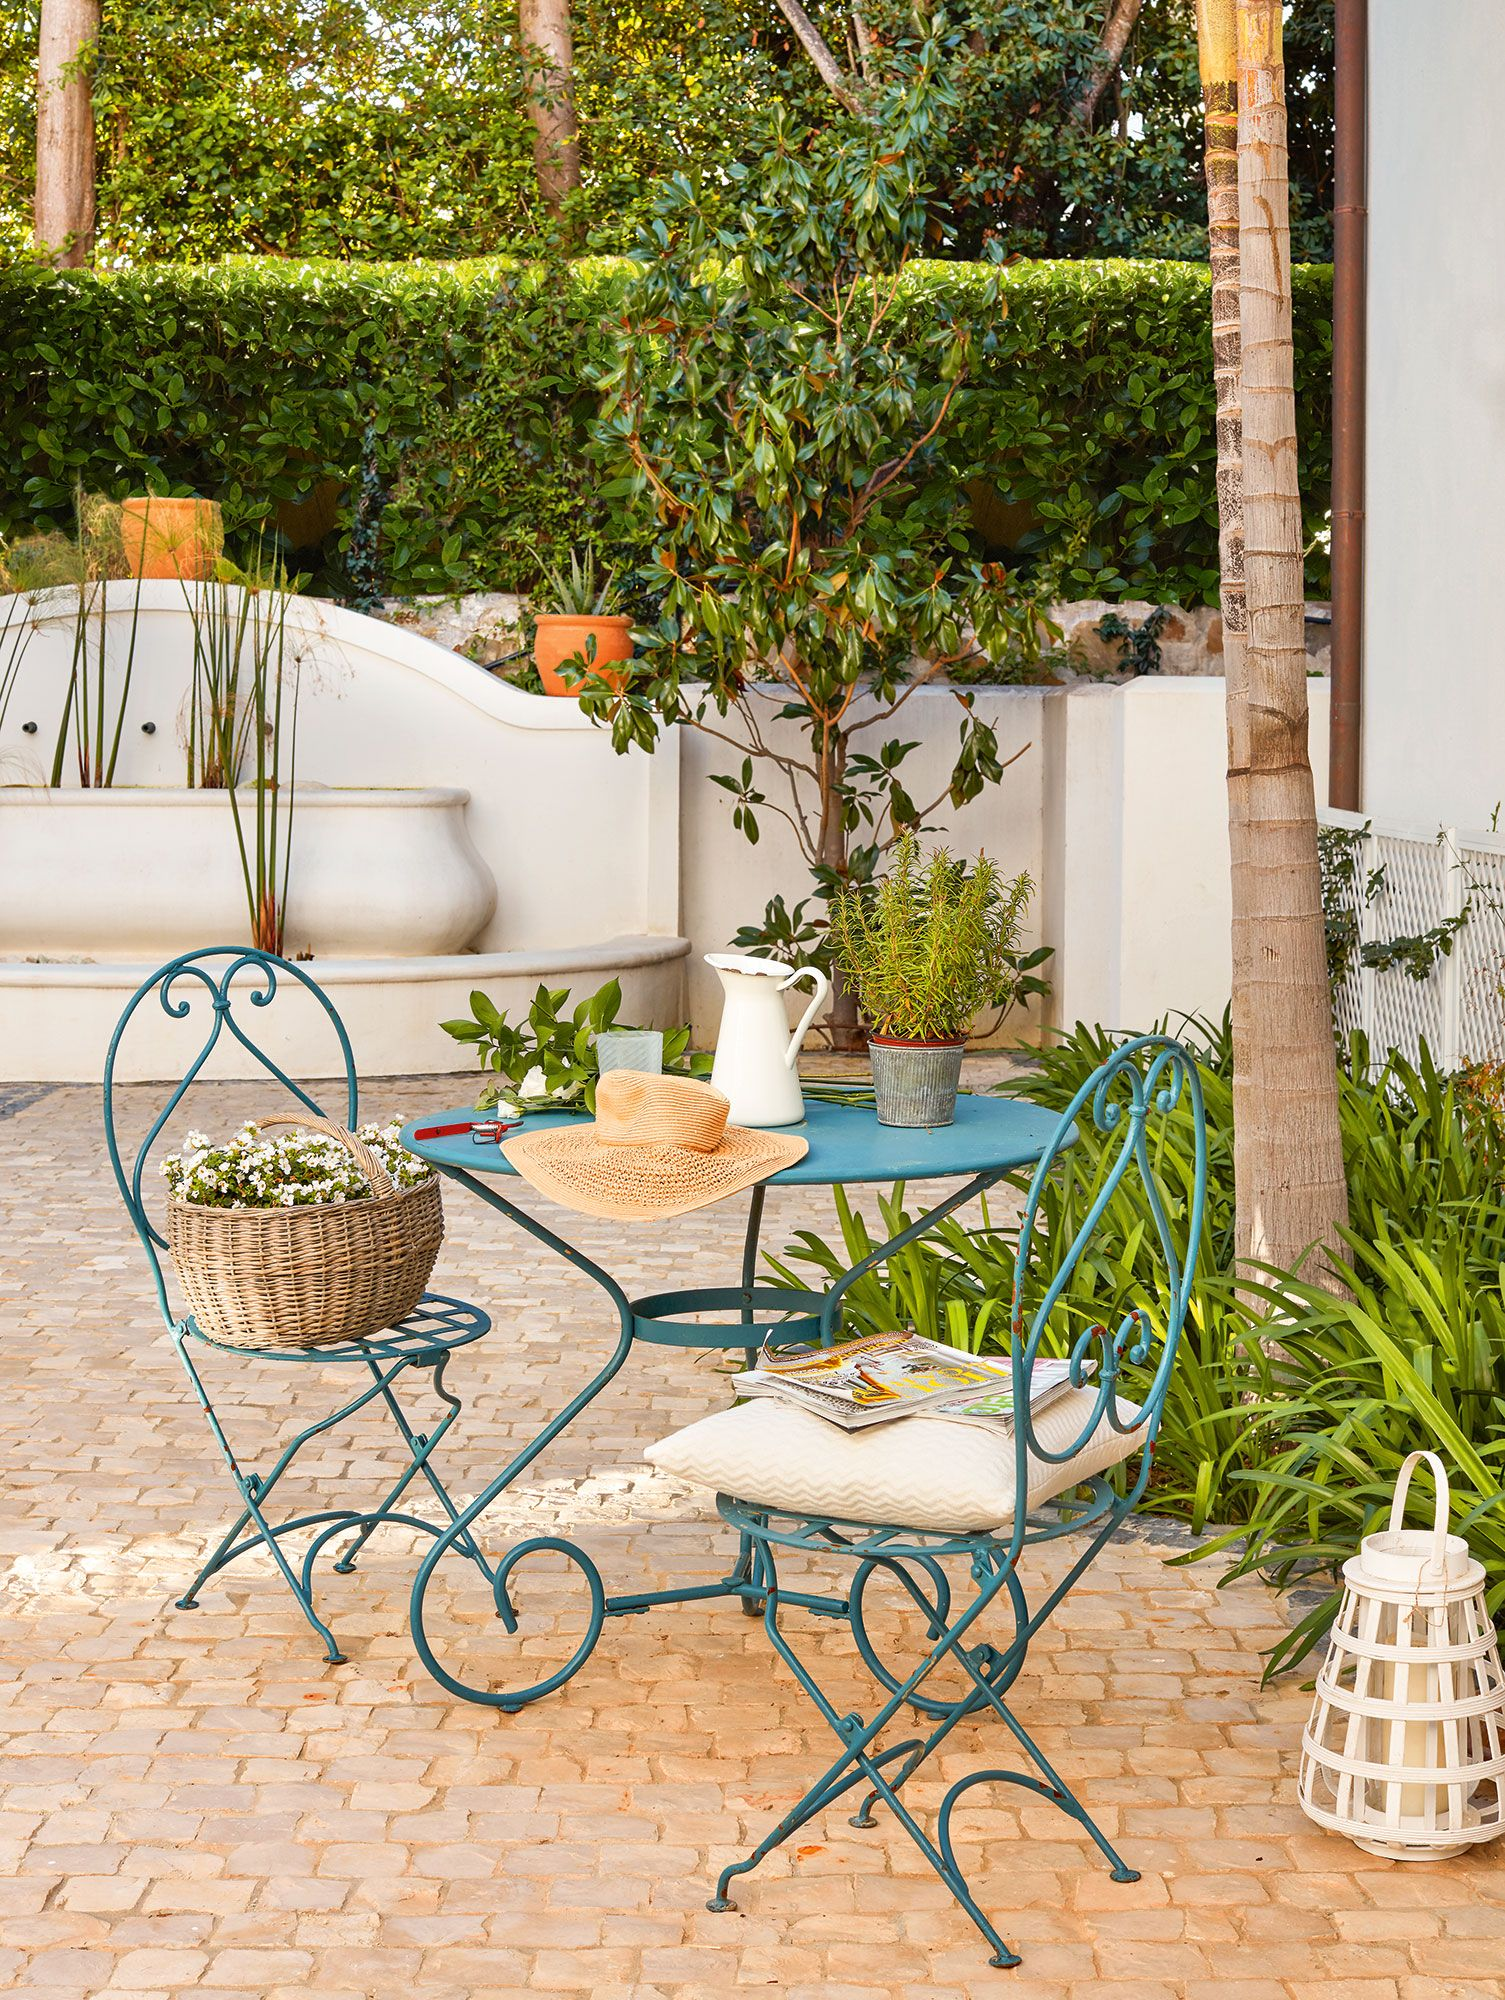 Muebles Para Porches El Patio Decoracion Pinterest Terrazas Patios Y